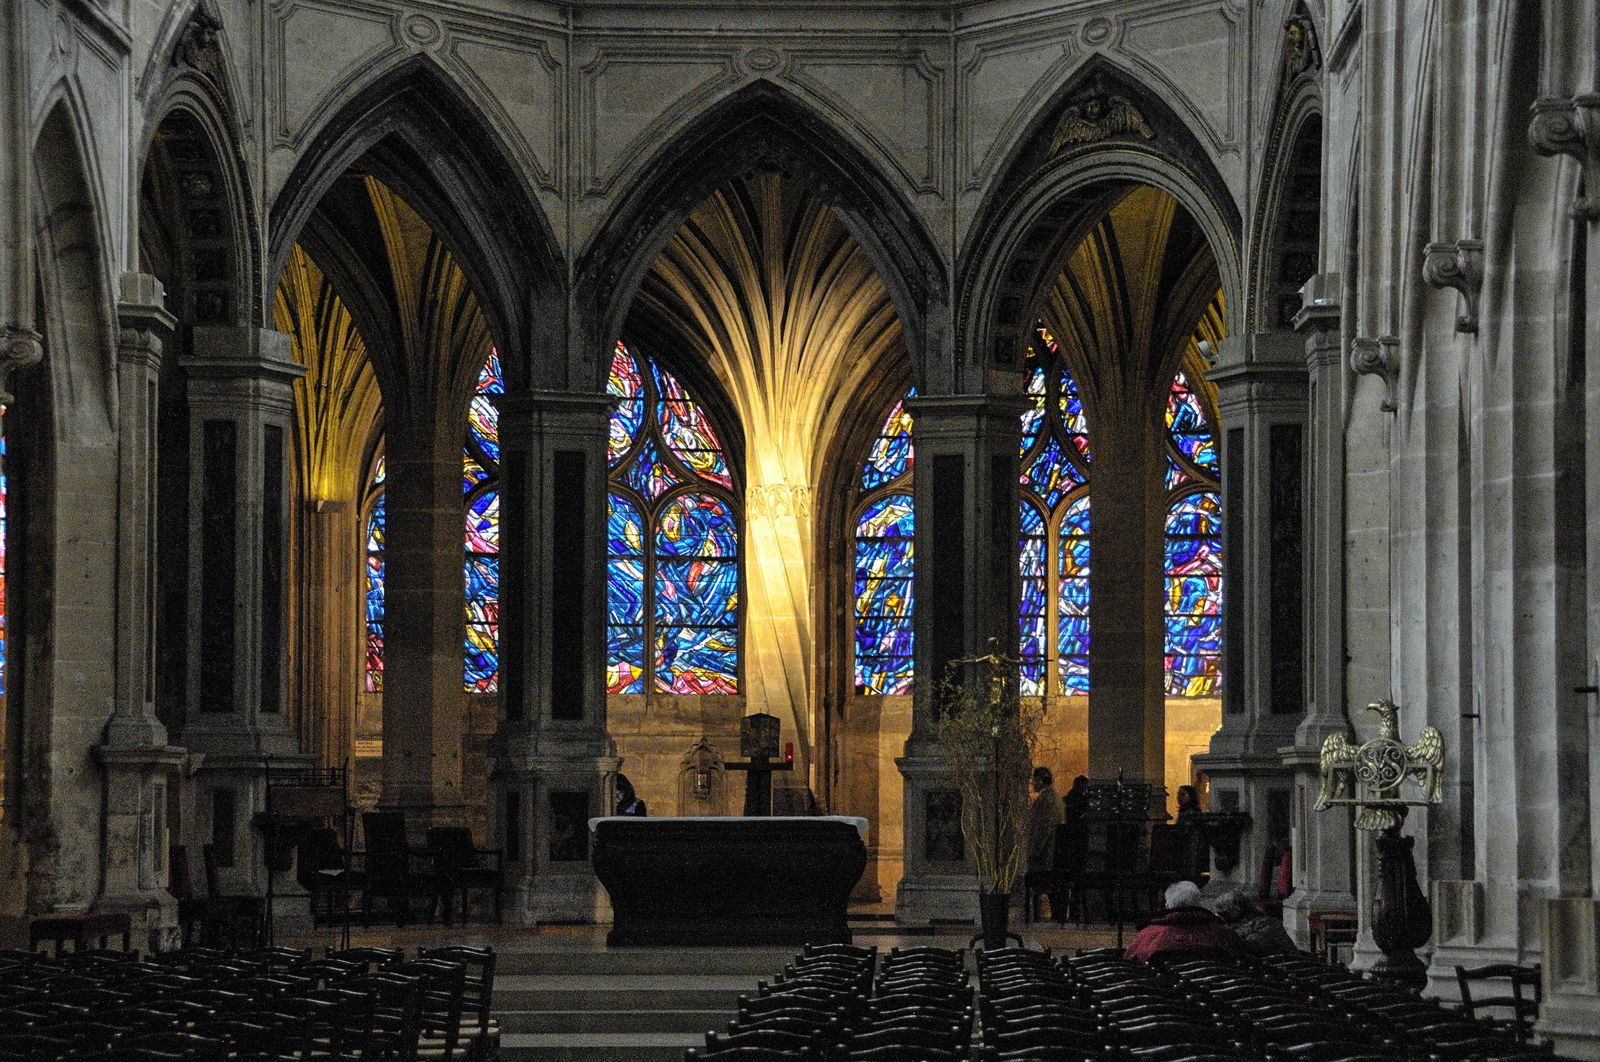 11 Discover Gothic French Style Architecture At Eglise St Severin